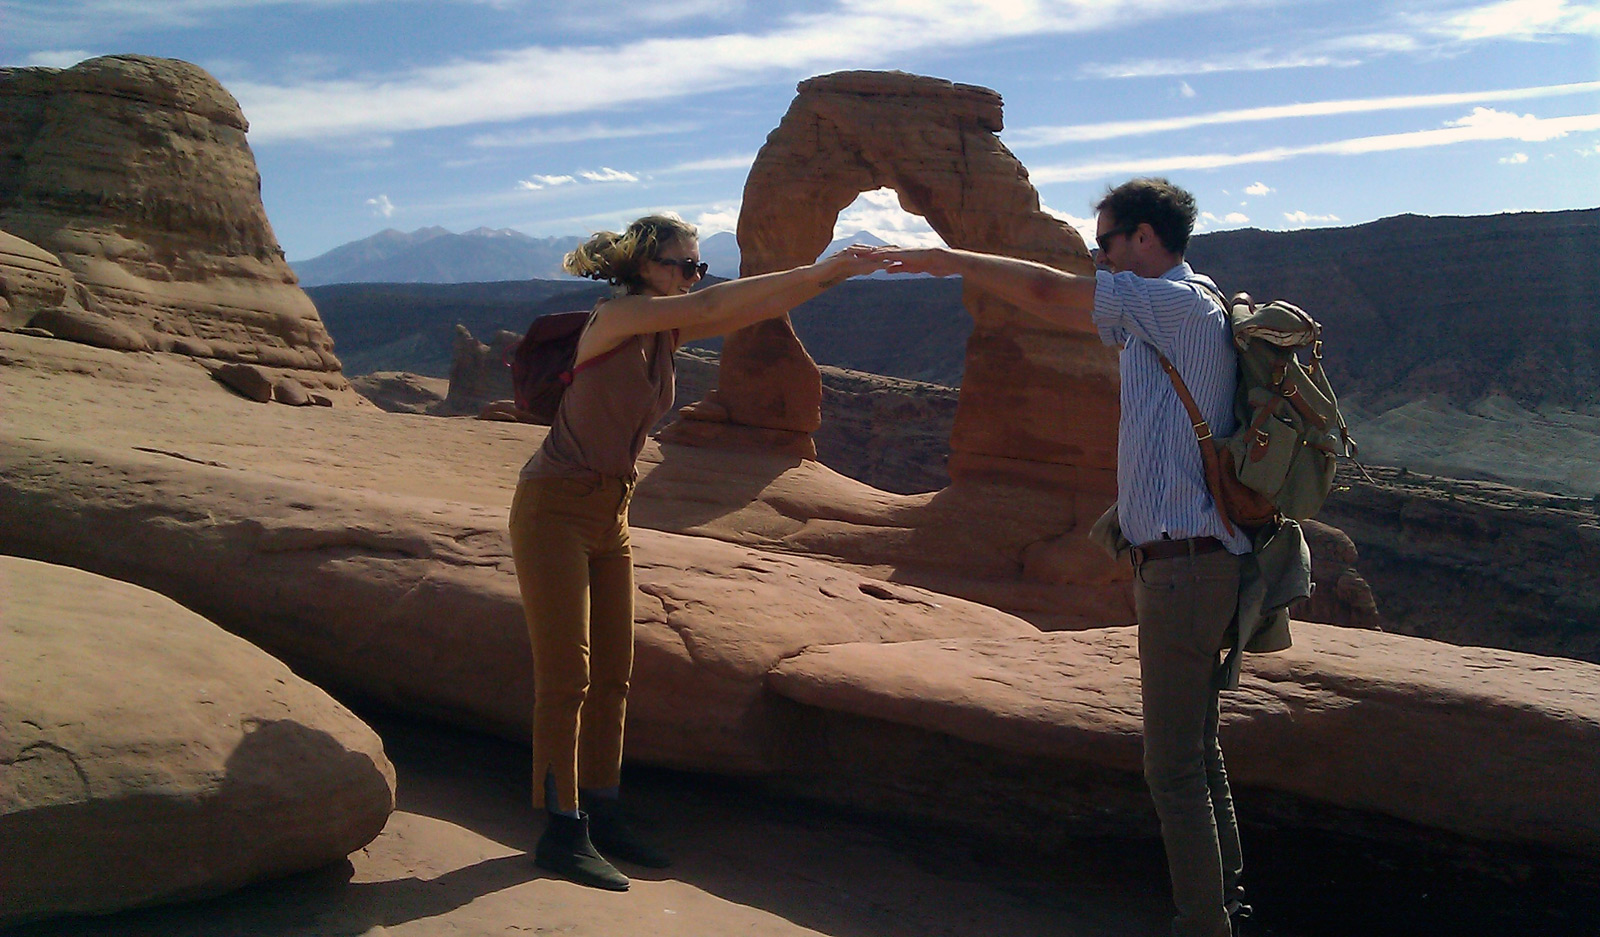 Aidan Koch and Shawn Creeden at Delicate Arch in Arches National Park, Utah